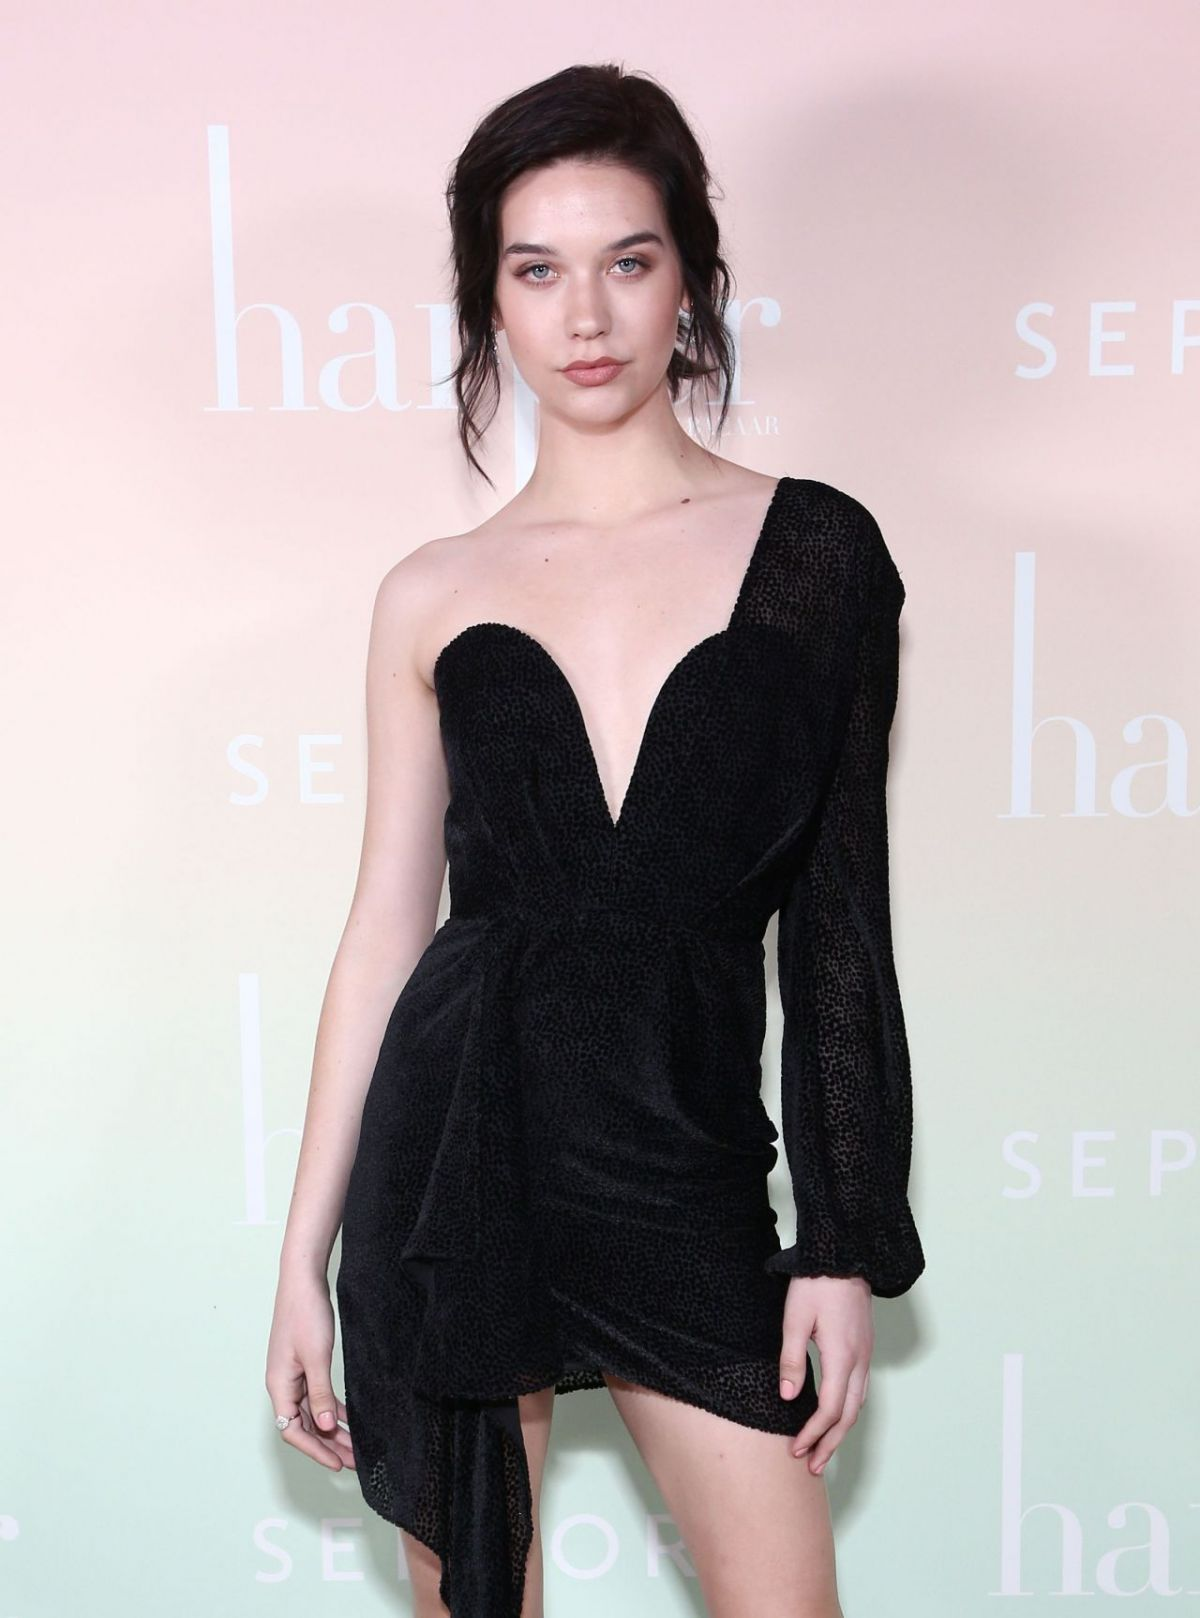 AMANDA STEELE at Harper's Bazaar Party in Los Angeles 04/26/2017